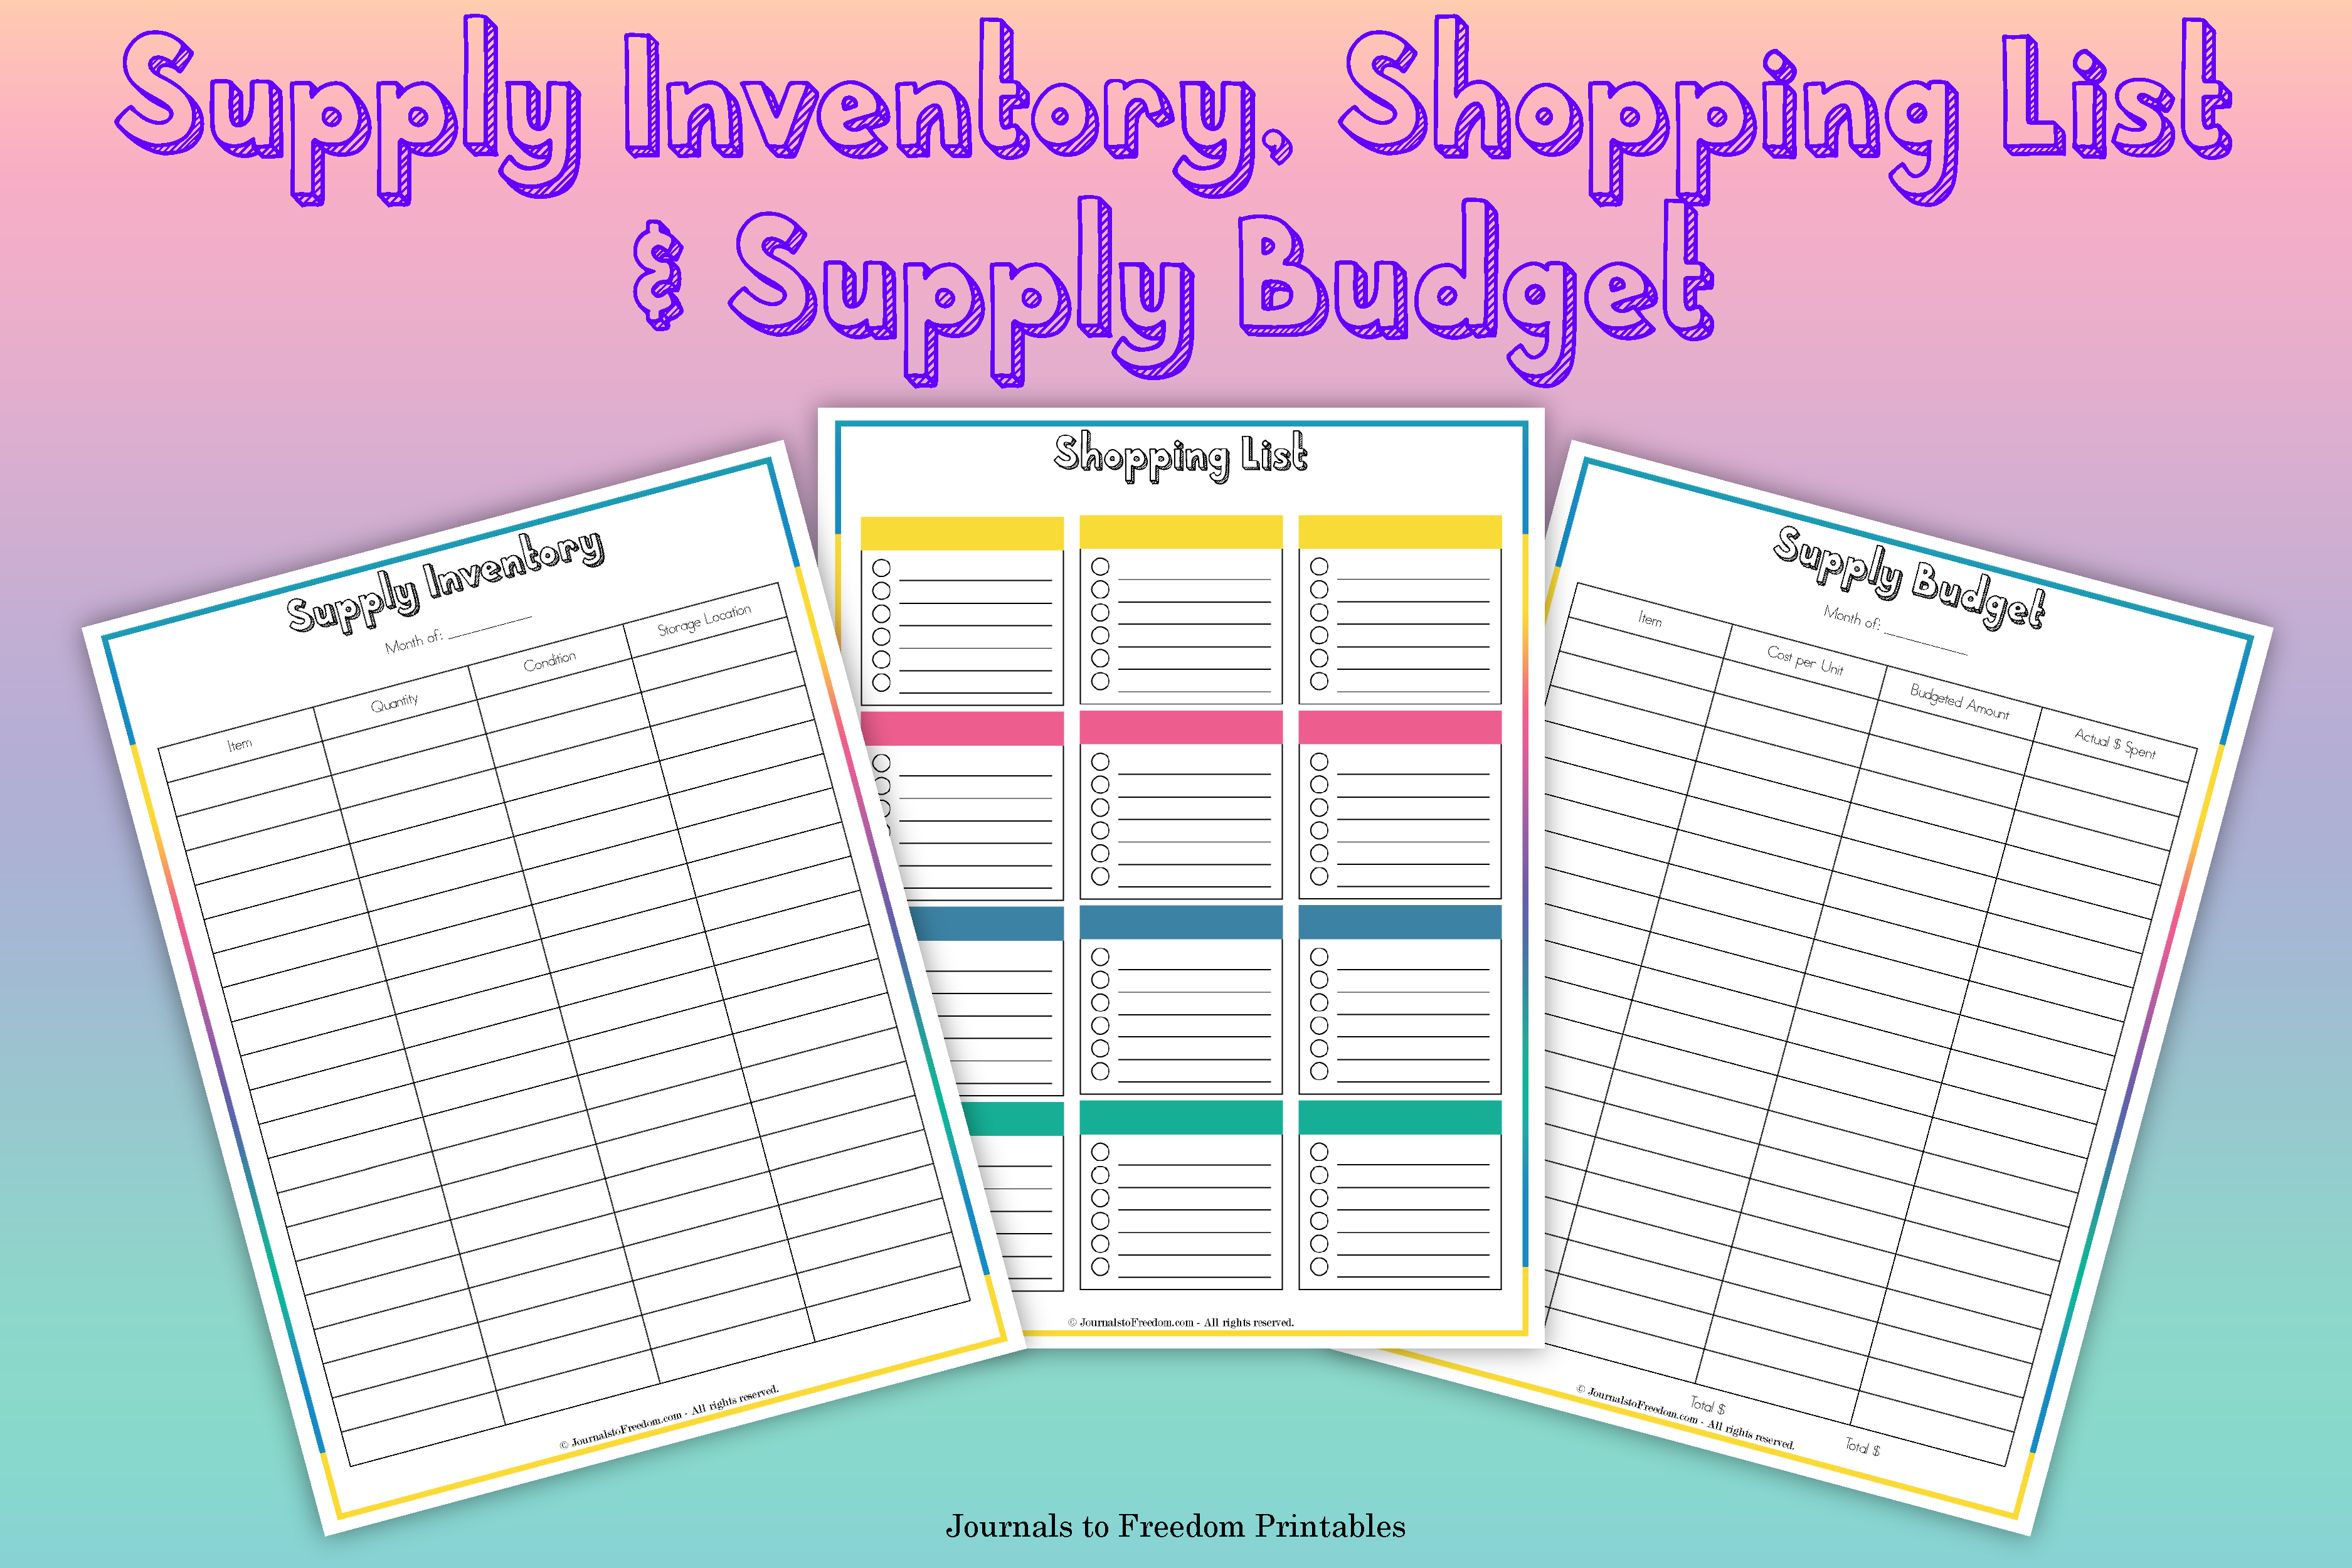 Printable Supply Inventory Shopping List and Supply Budget